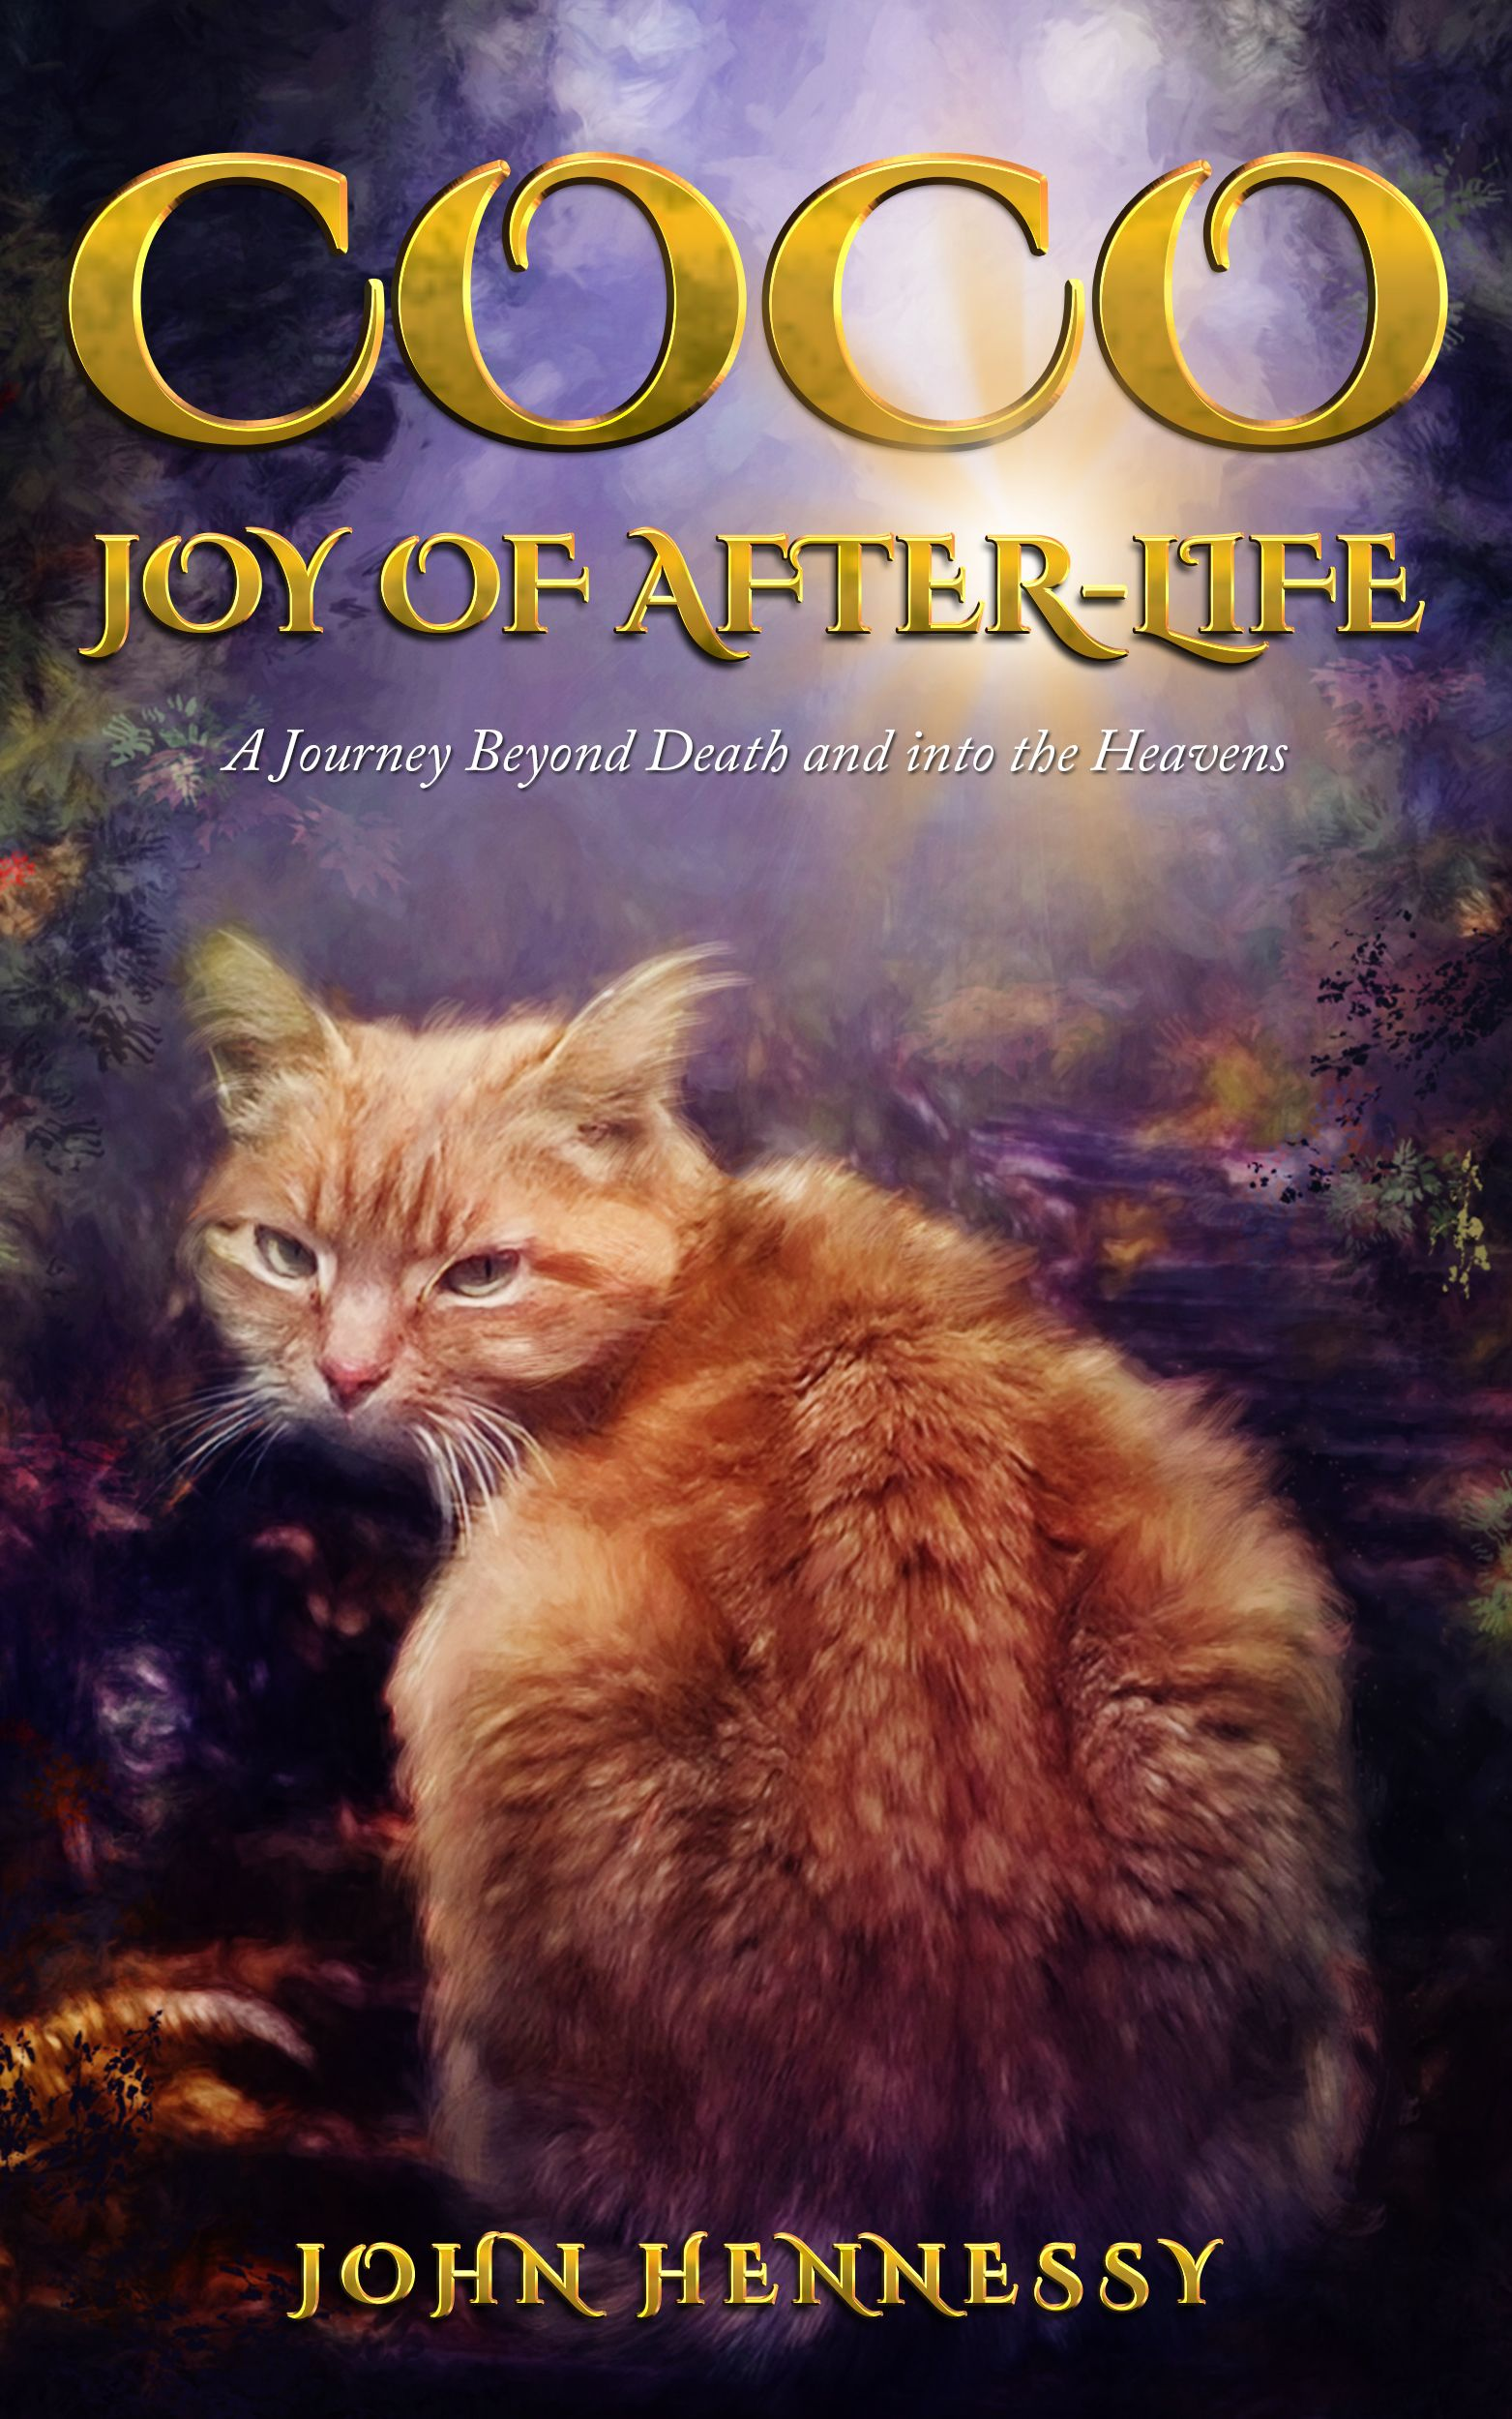 Coco - Joy of After-Life - a new release in 2018. Keep an eye on my Amazon page and website for updates! https://www.amazon.com/John-Hennessy/e/B0068UGR44/ref=sr_ntt_srch_lnk_1?qid=1503467599&sr=8-1